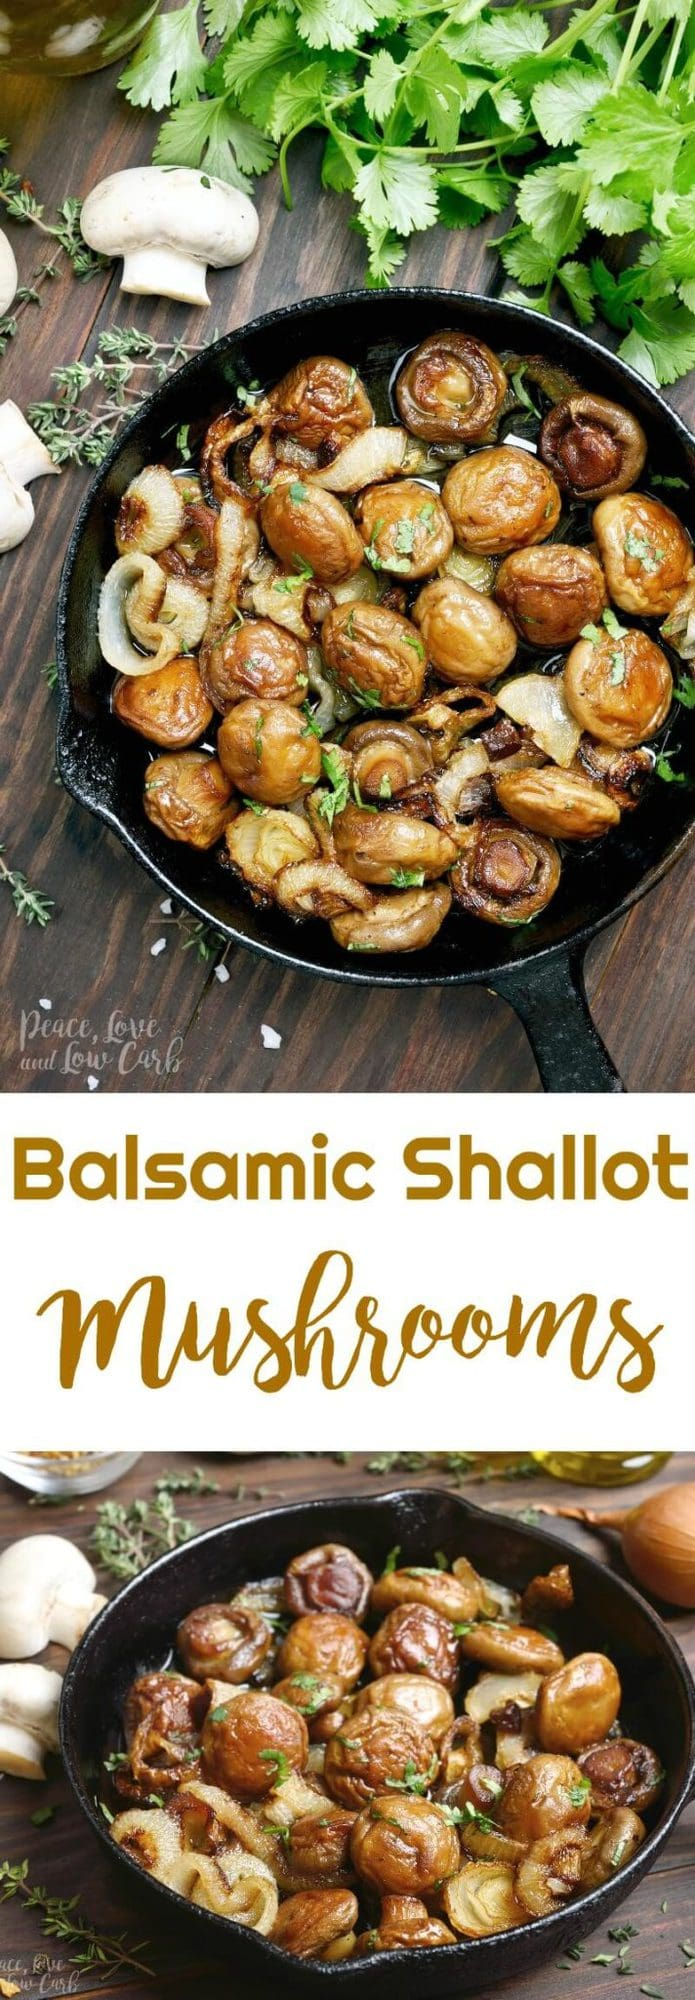 Balsamic Shallot Mushrooms | Peace Love and Low Carb